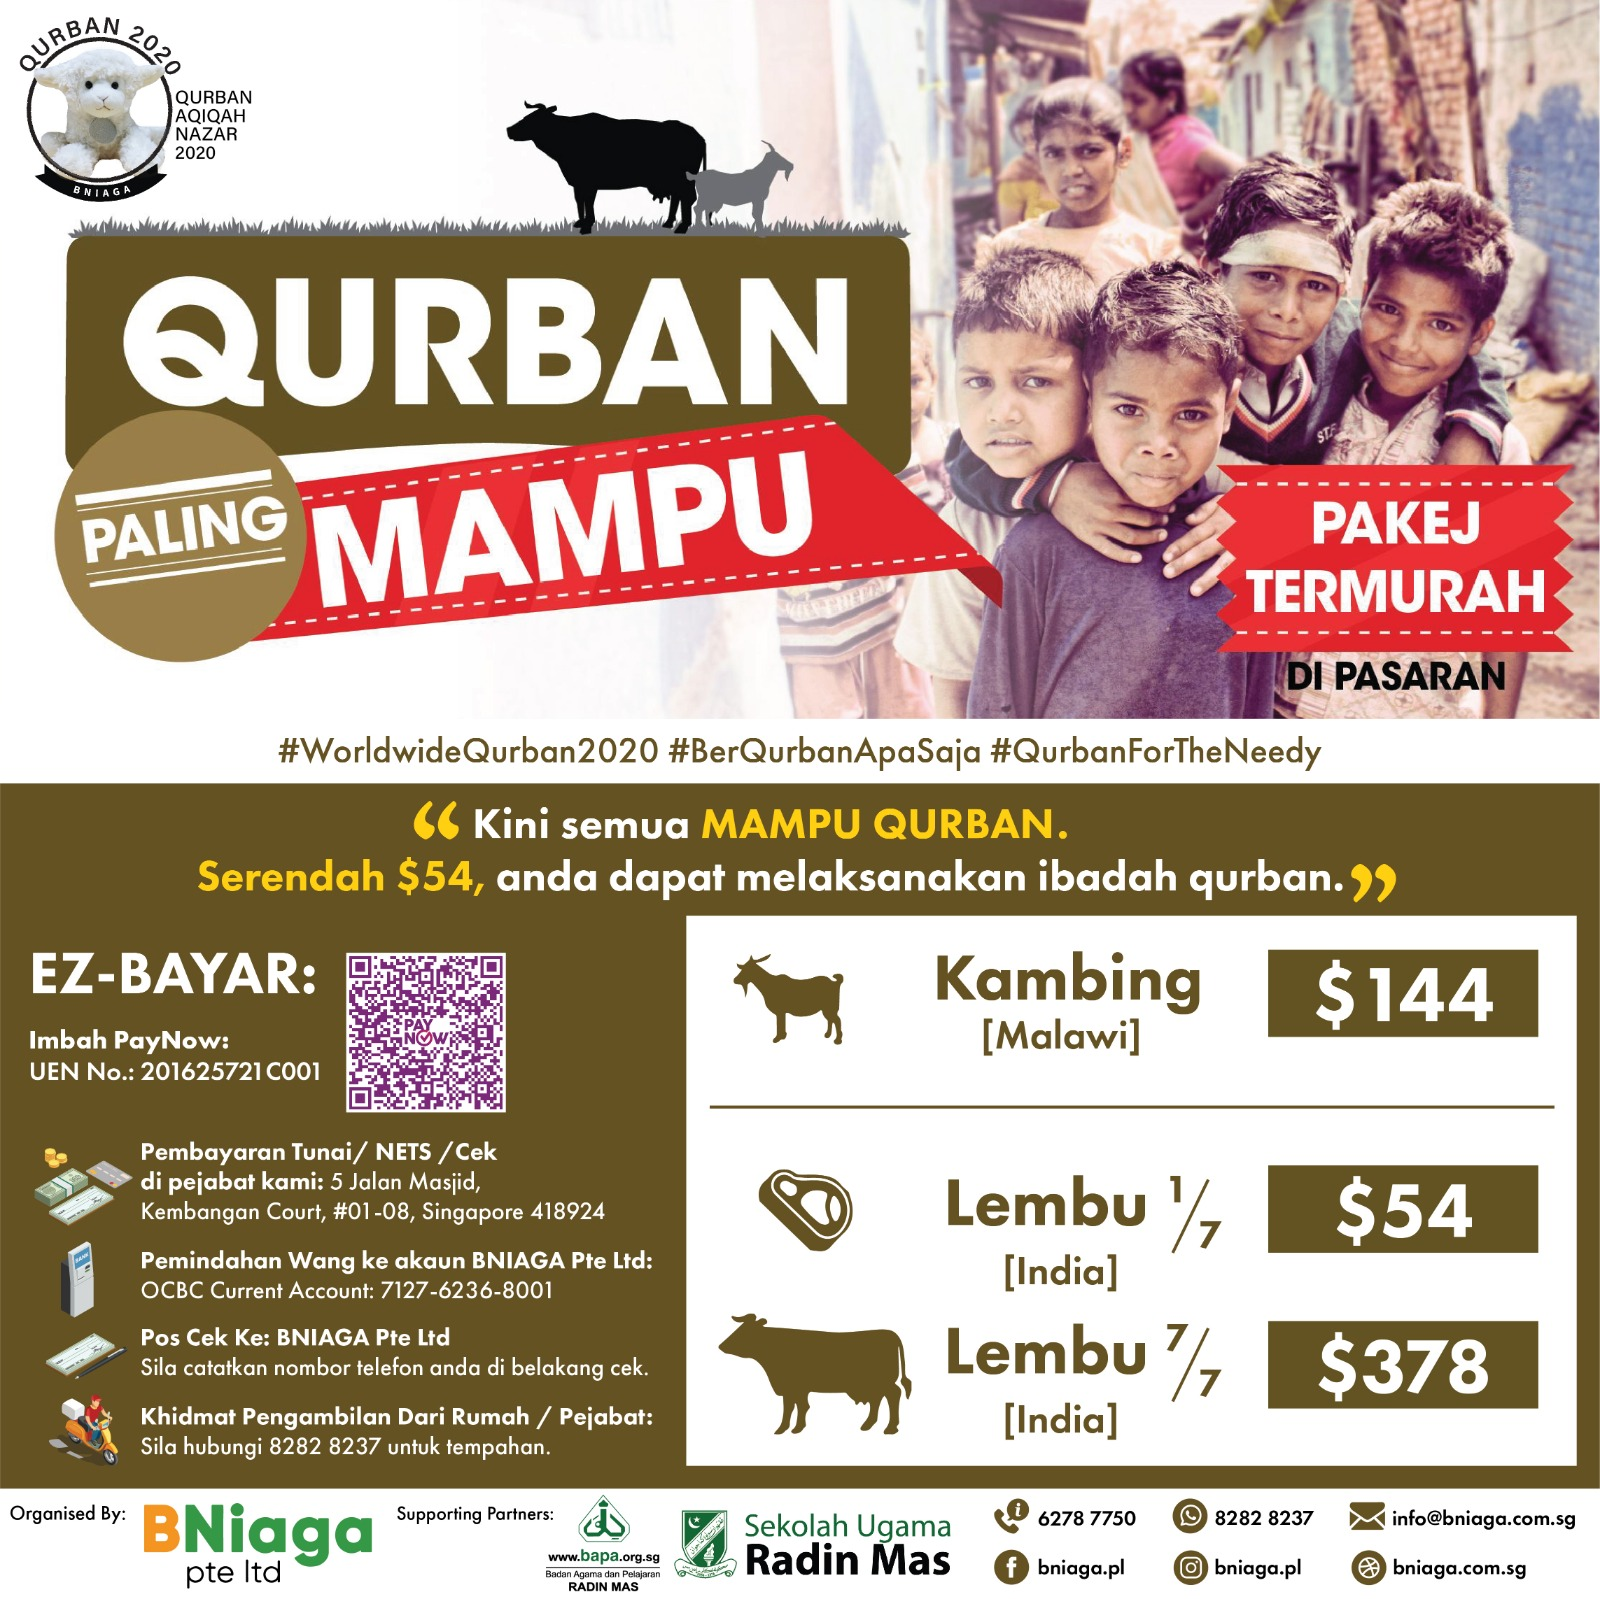 Most Affordable - Qurban Paling Mampu